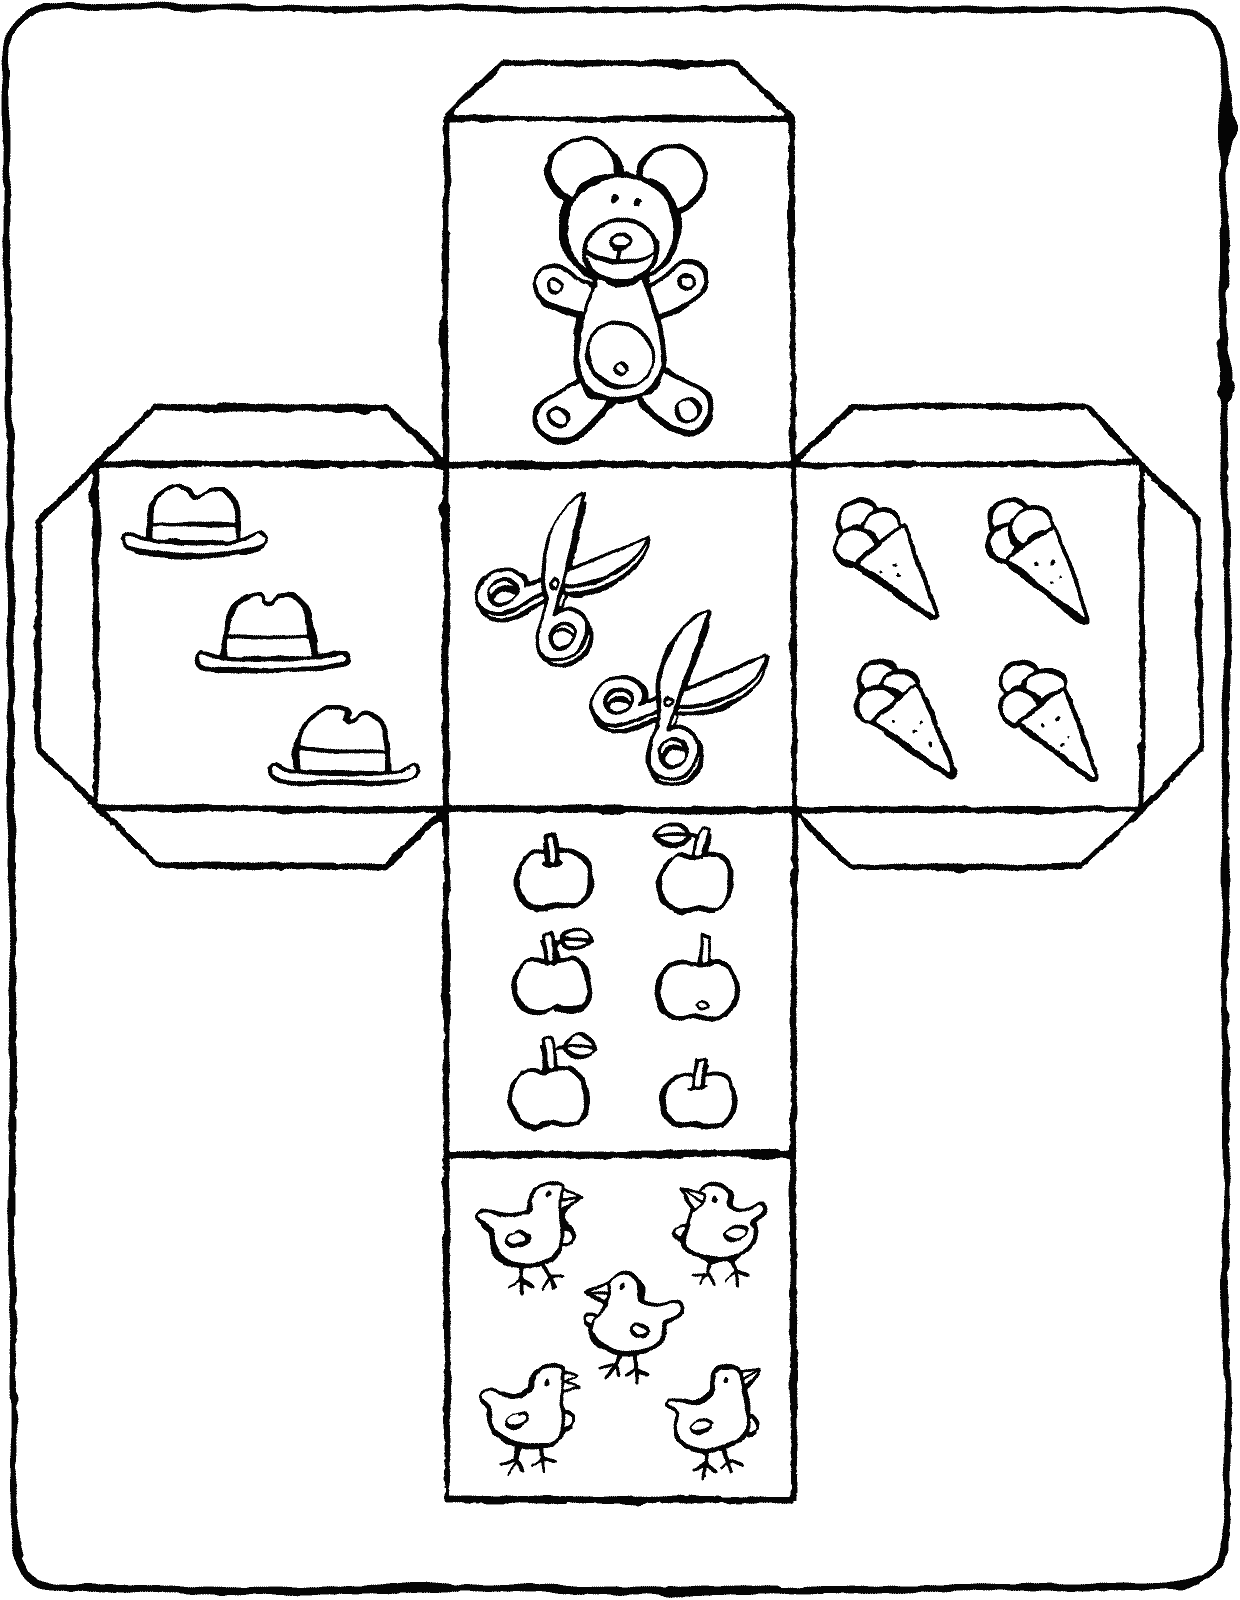 die crafts colouring page page drawing picture 01k